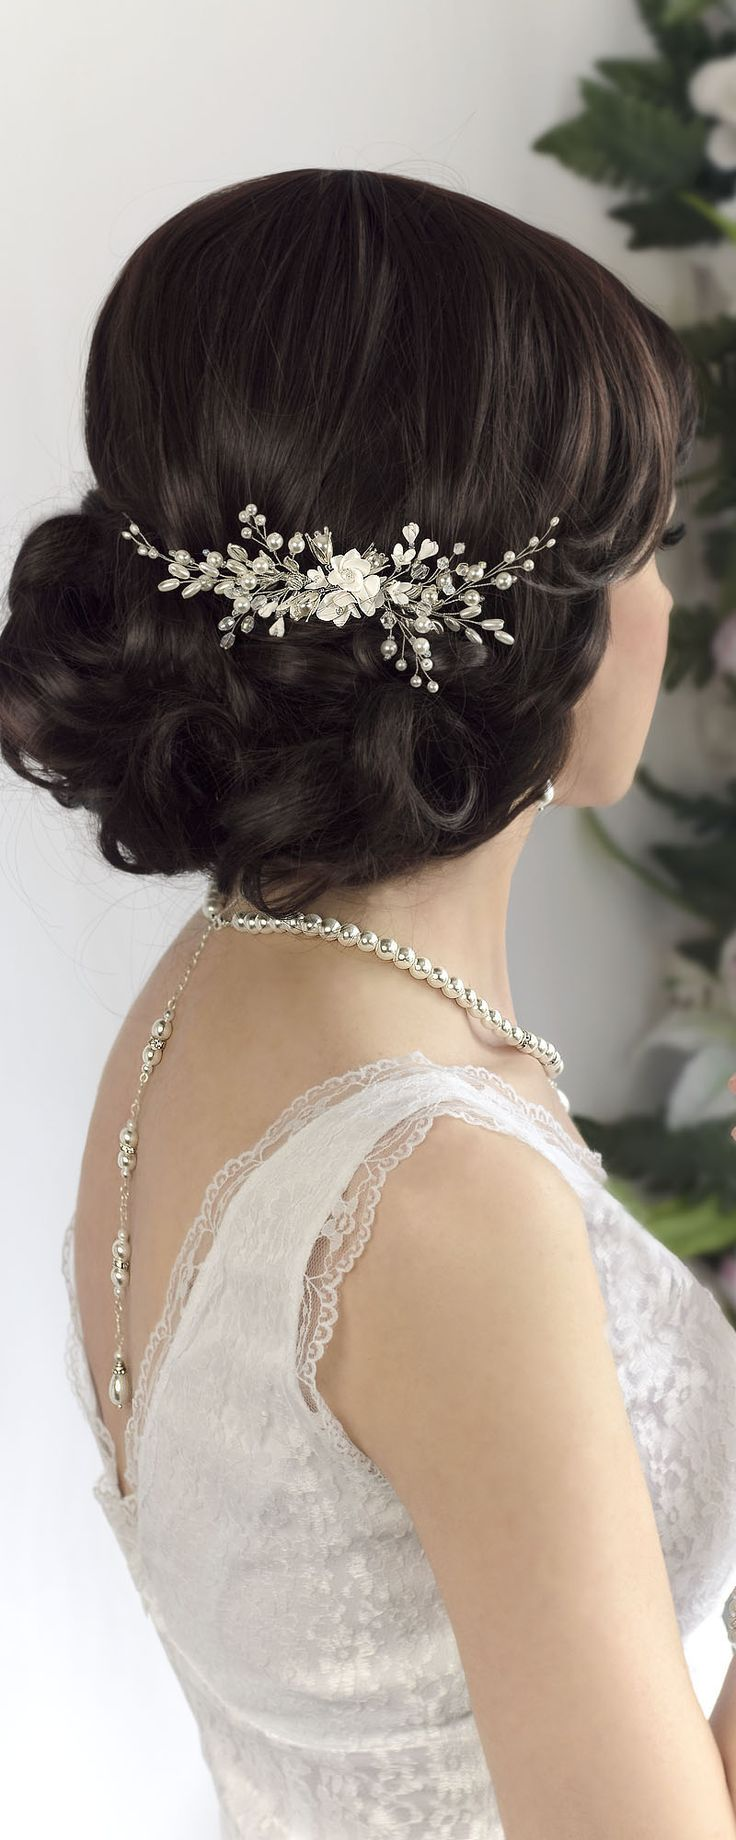 Butterfly hair accessories for weddings uk - Bridal Hair Comb Wedding Headpiece Bridal Hair Accessories Handmade Wedding Pearl Comb For